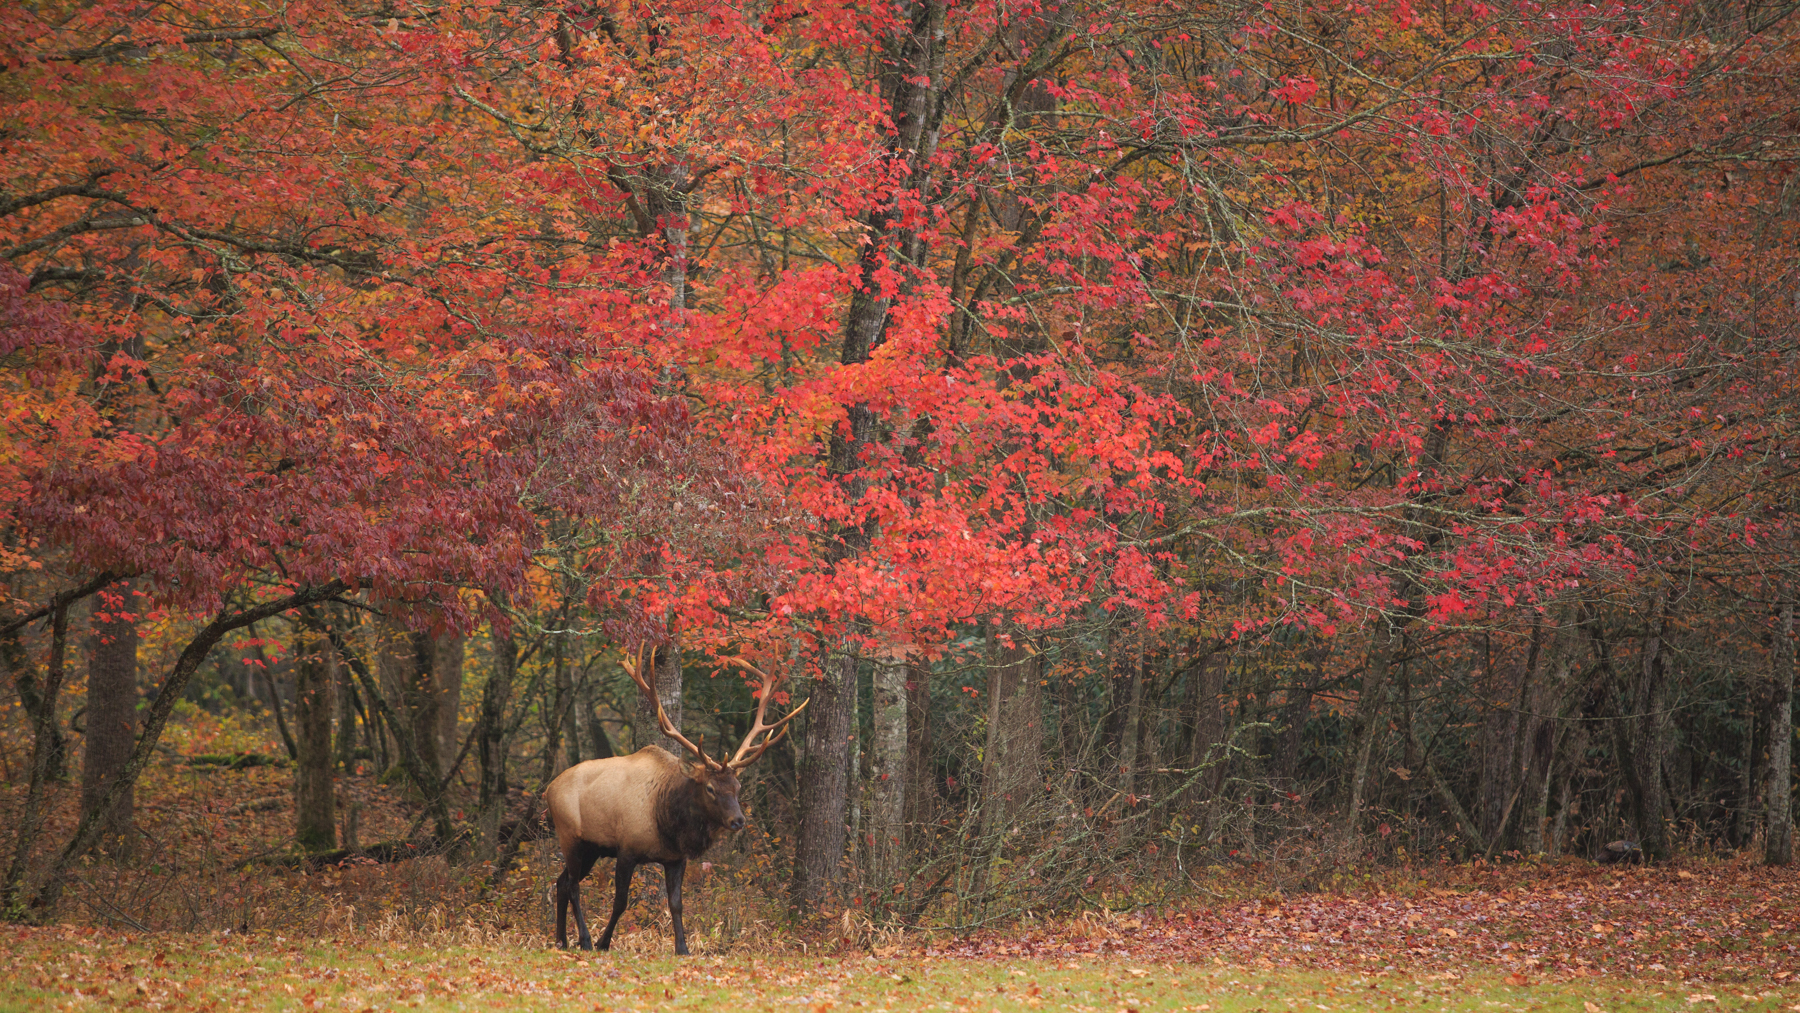 As I said, I think the color is better in Cataloochee Valley.